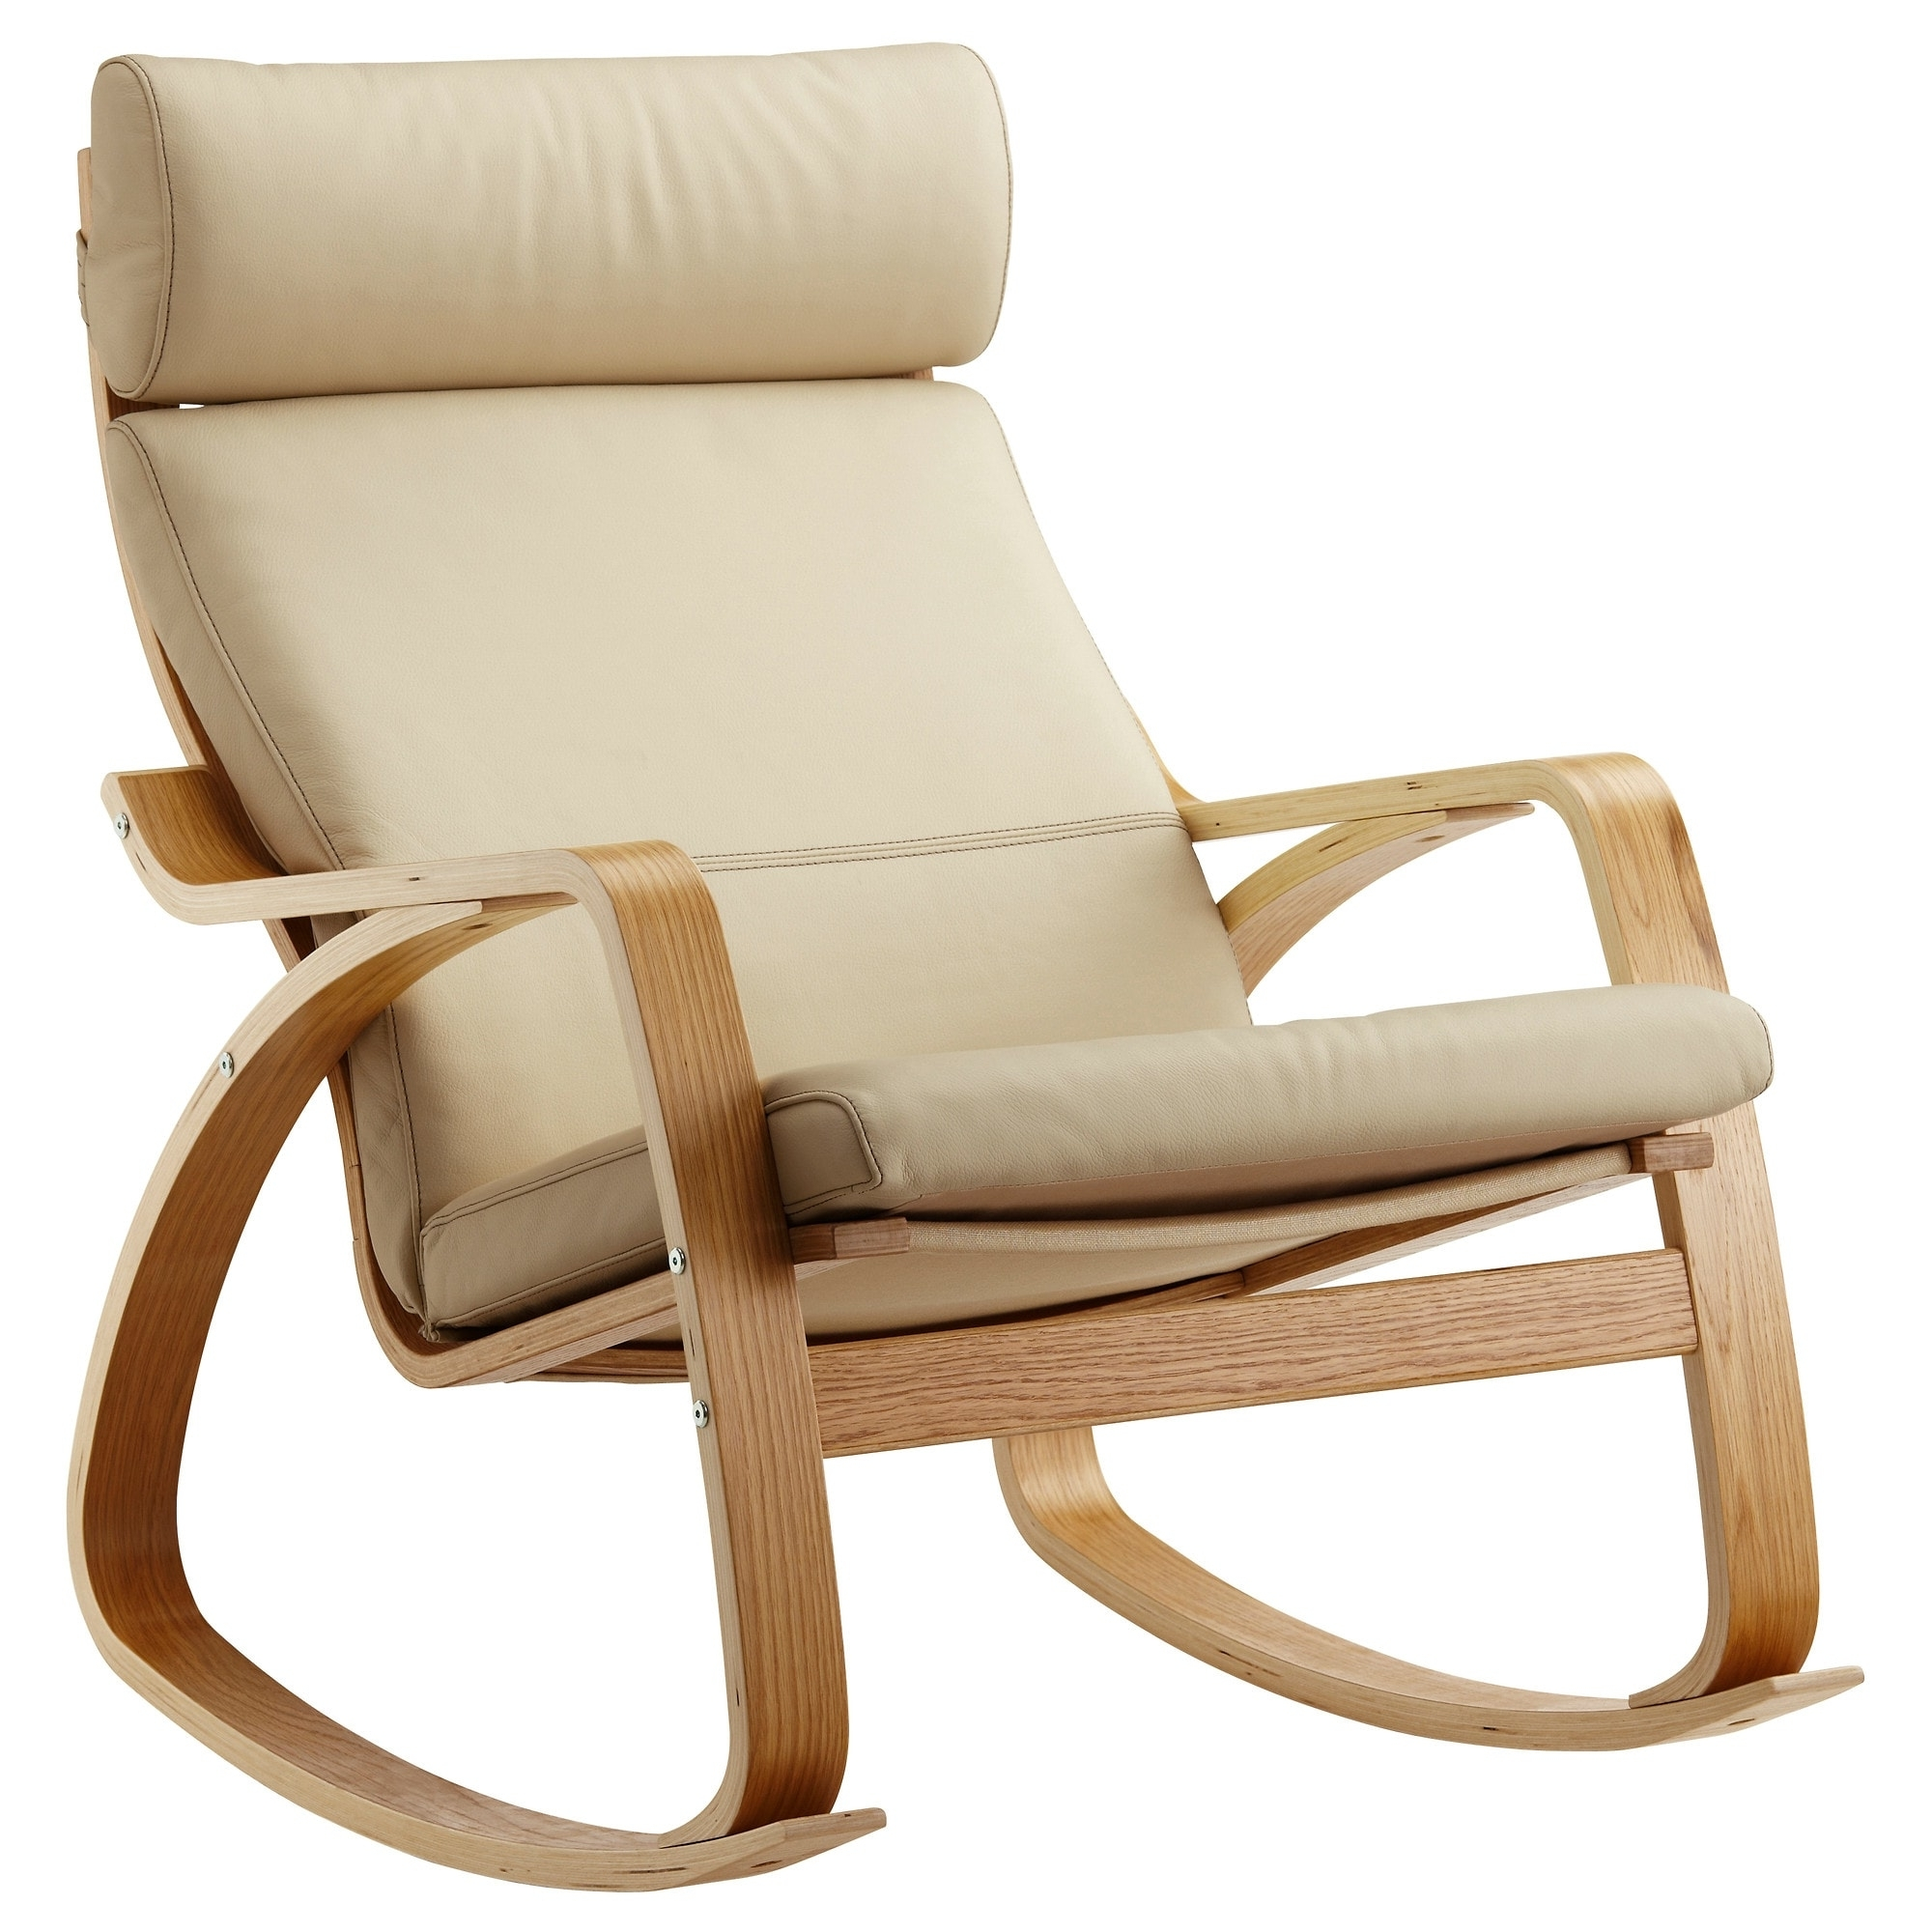 Best And Newest Poäng Rocking Chair Oak Veneer/glose Eggshell – Ikea Intended For Ikea Rocking Chairs (View 1 of 15)